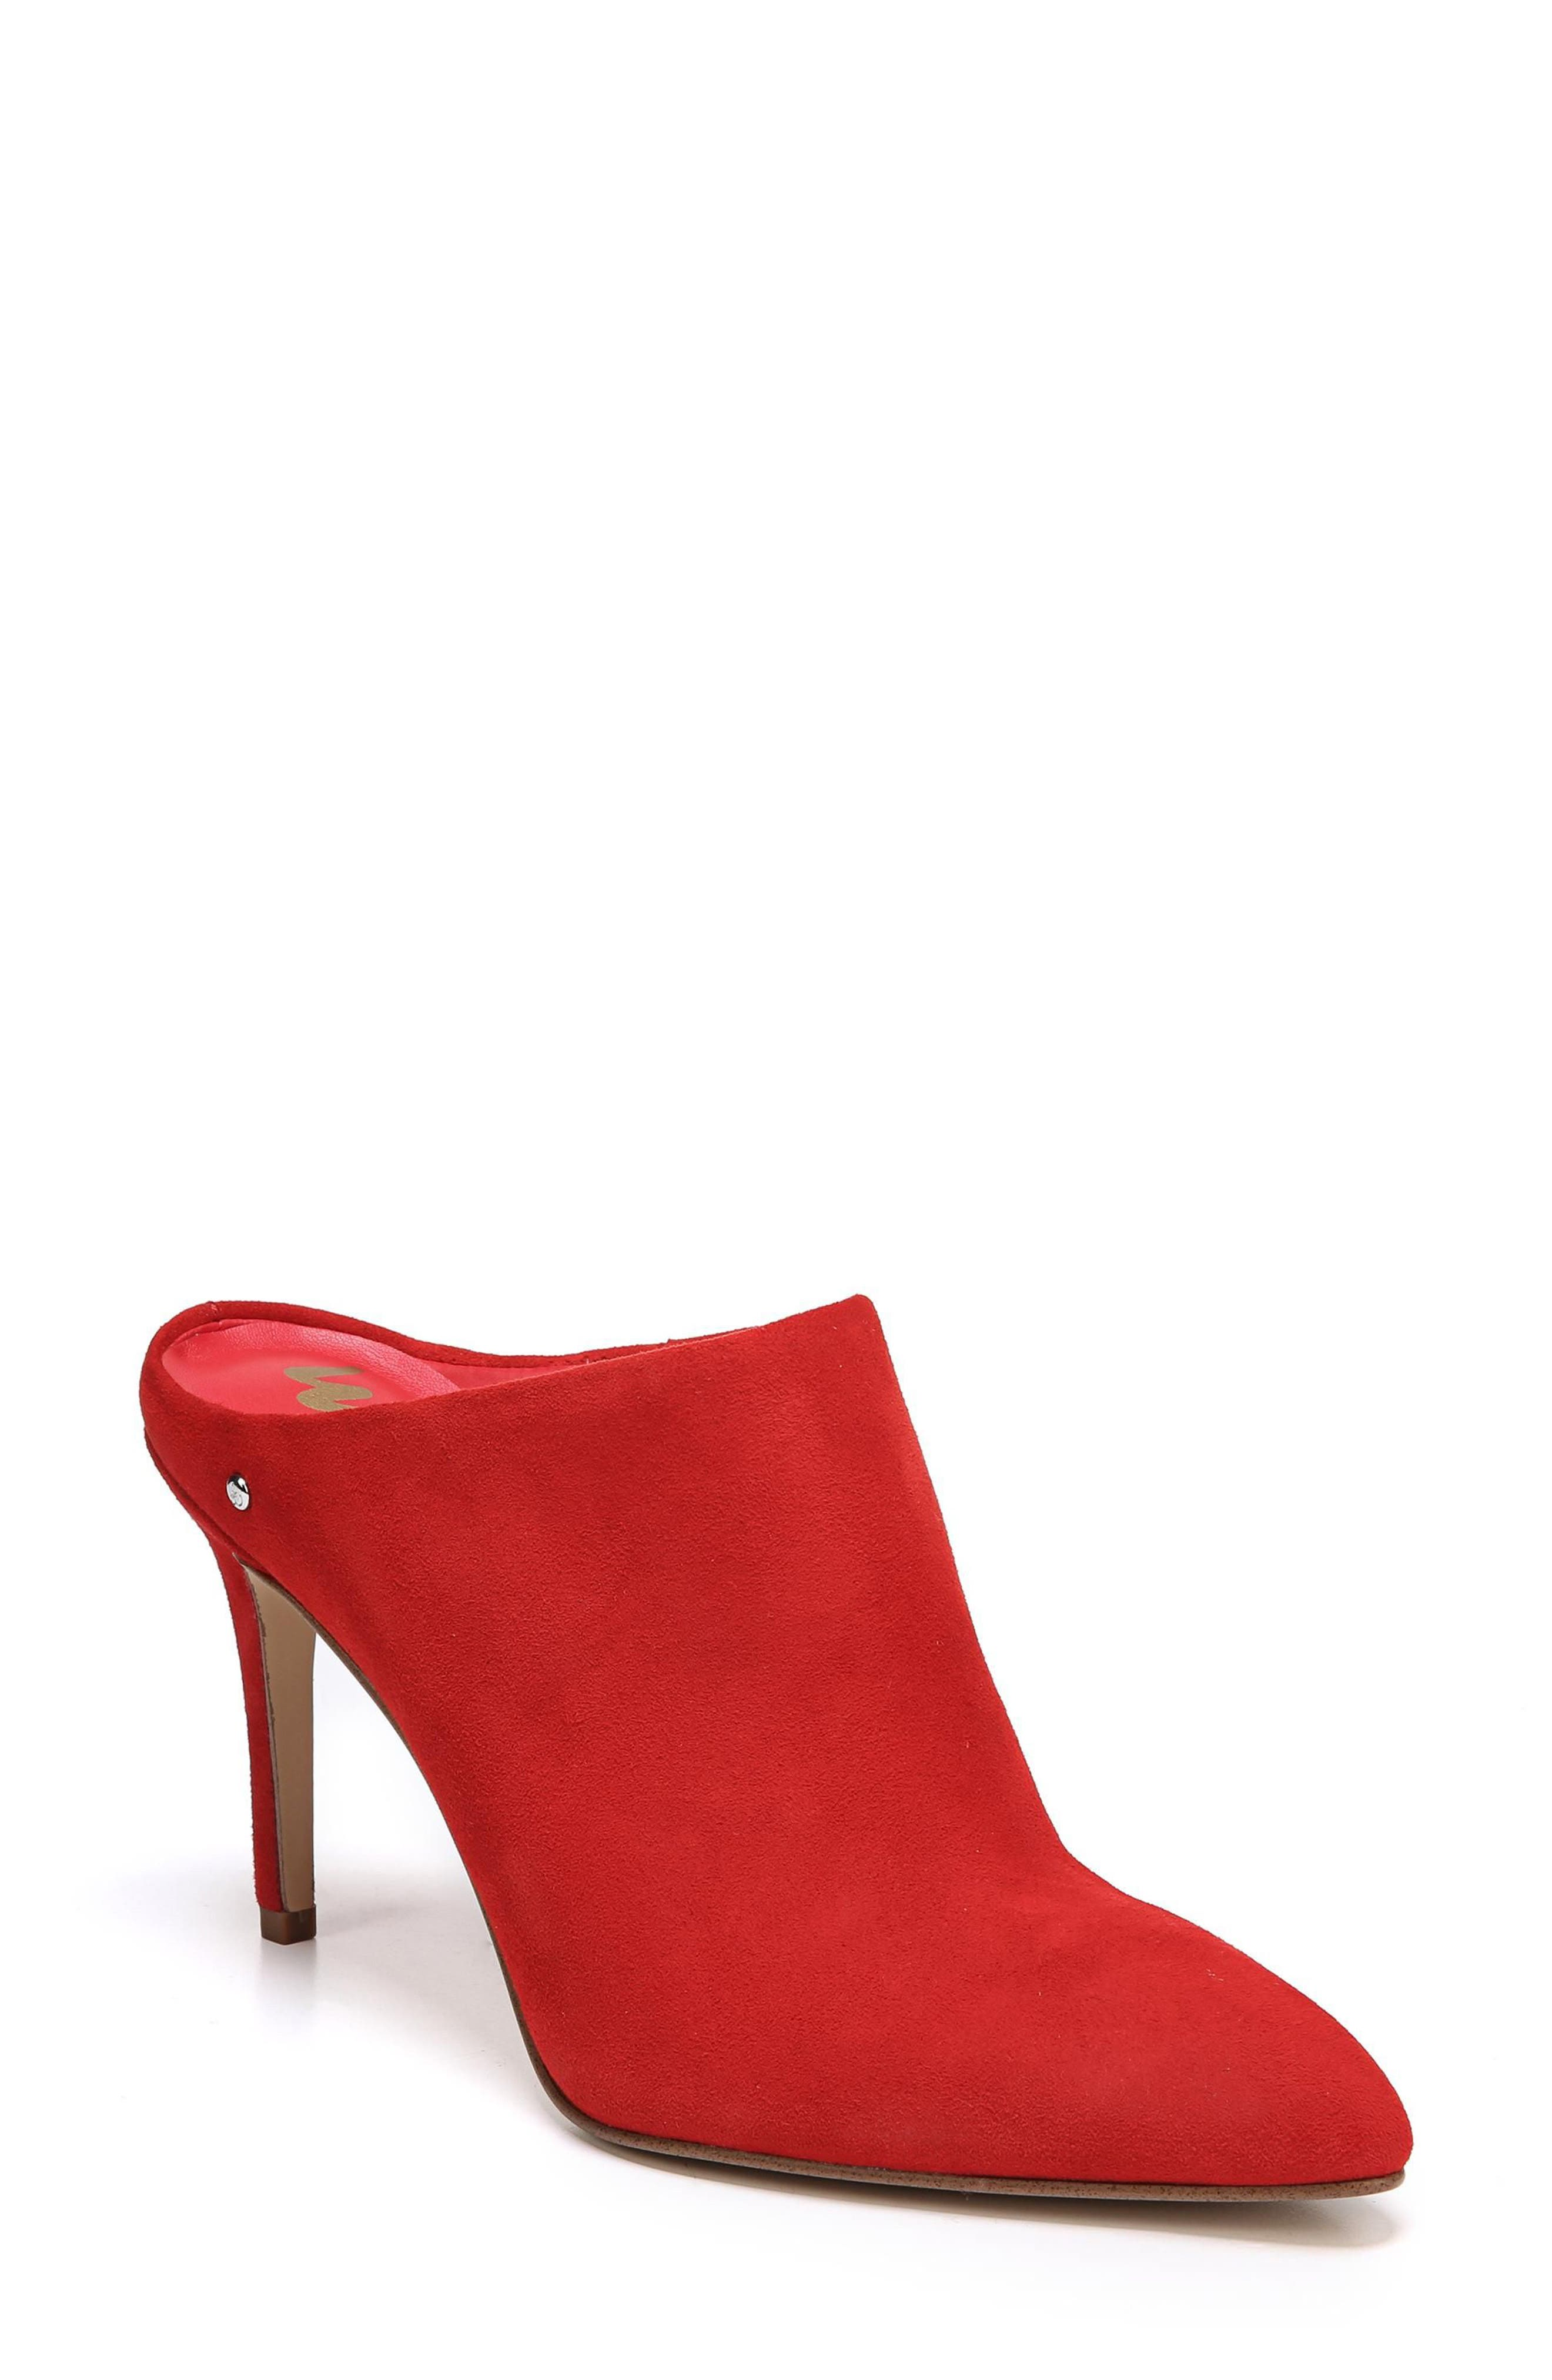 Oran Mule,                             Main thumbnail 1, color,                             Candy Red Suede